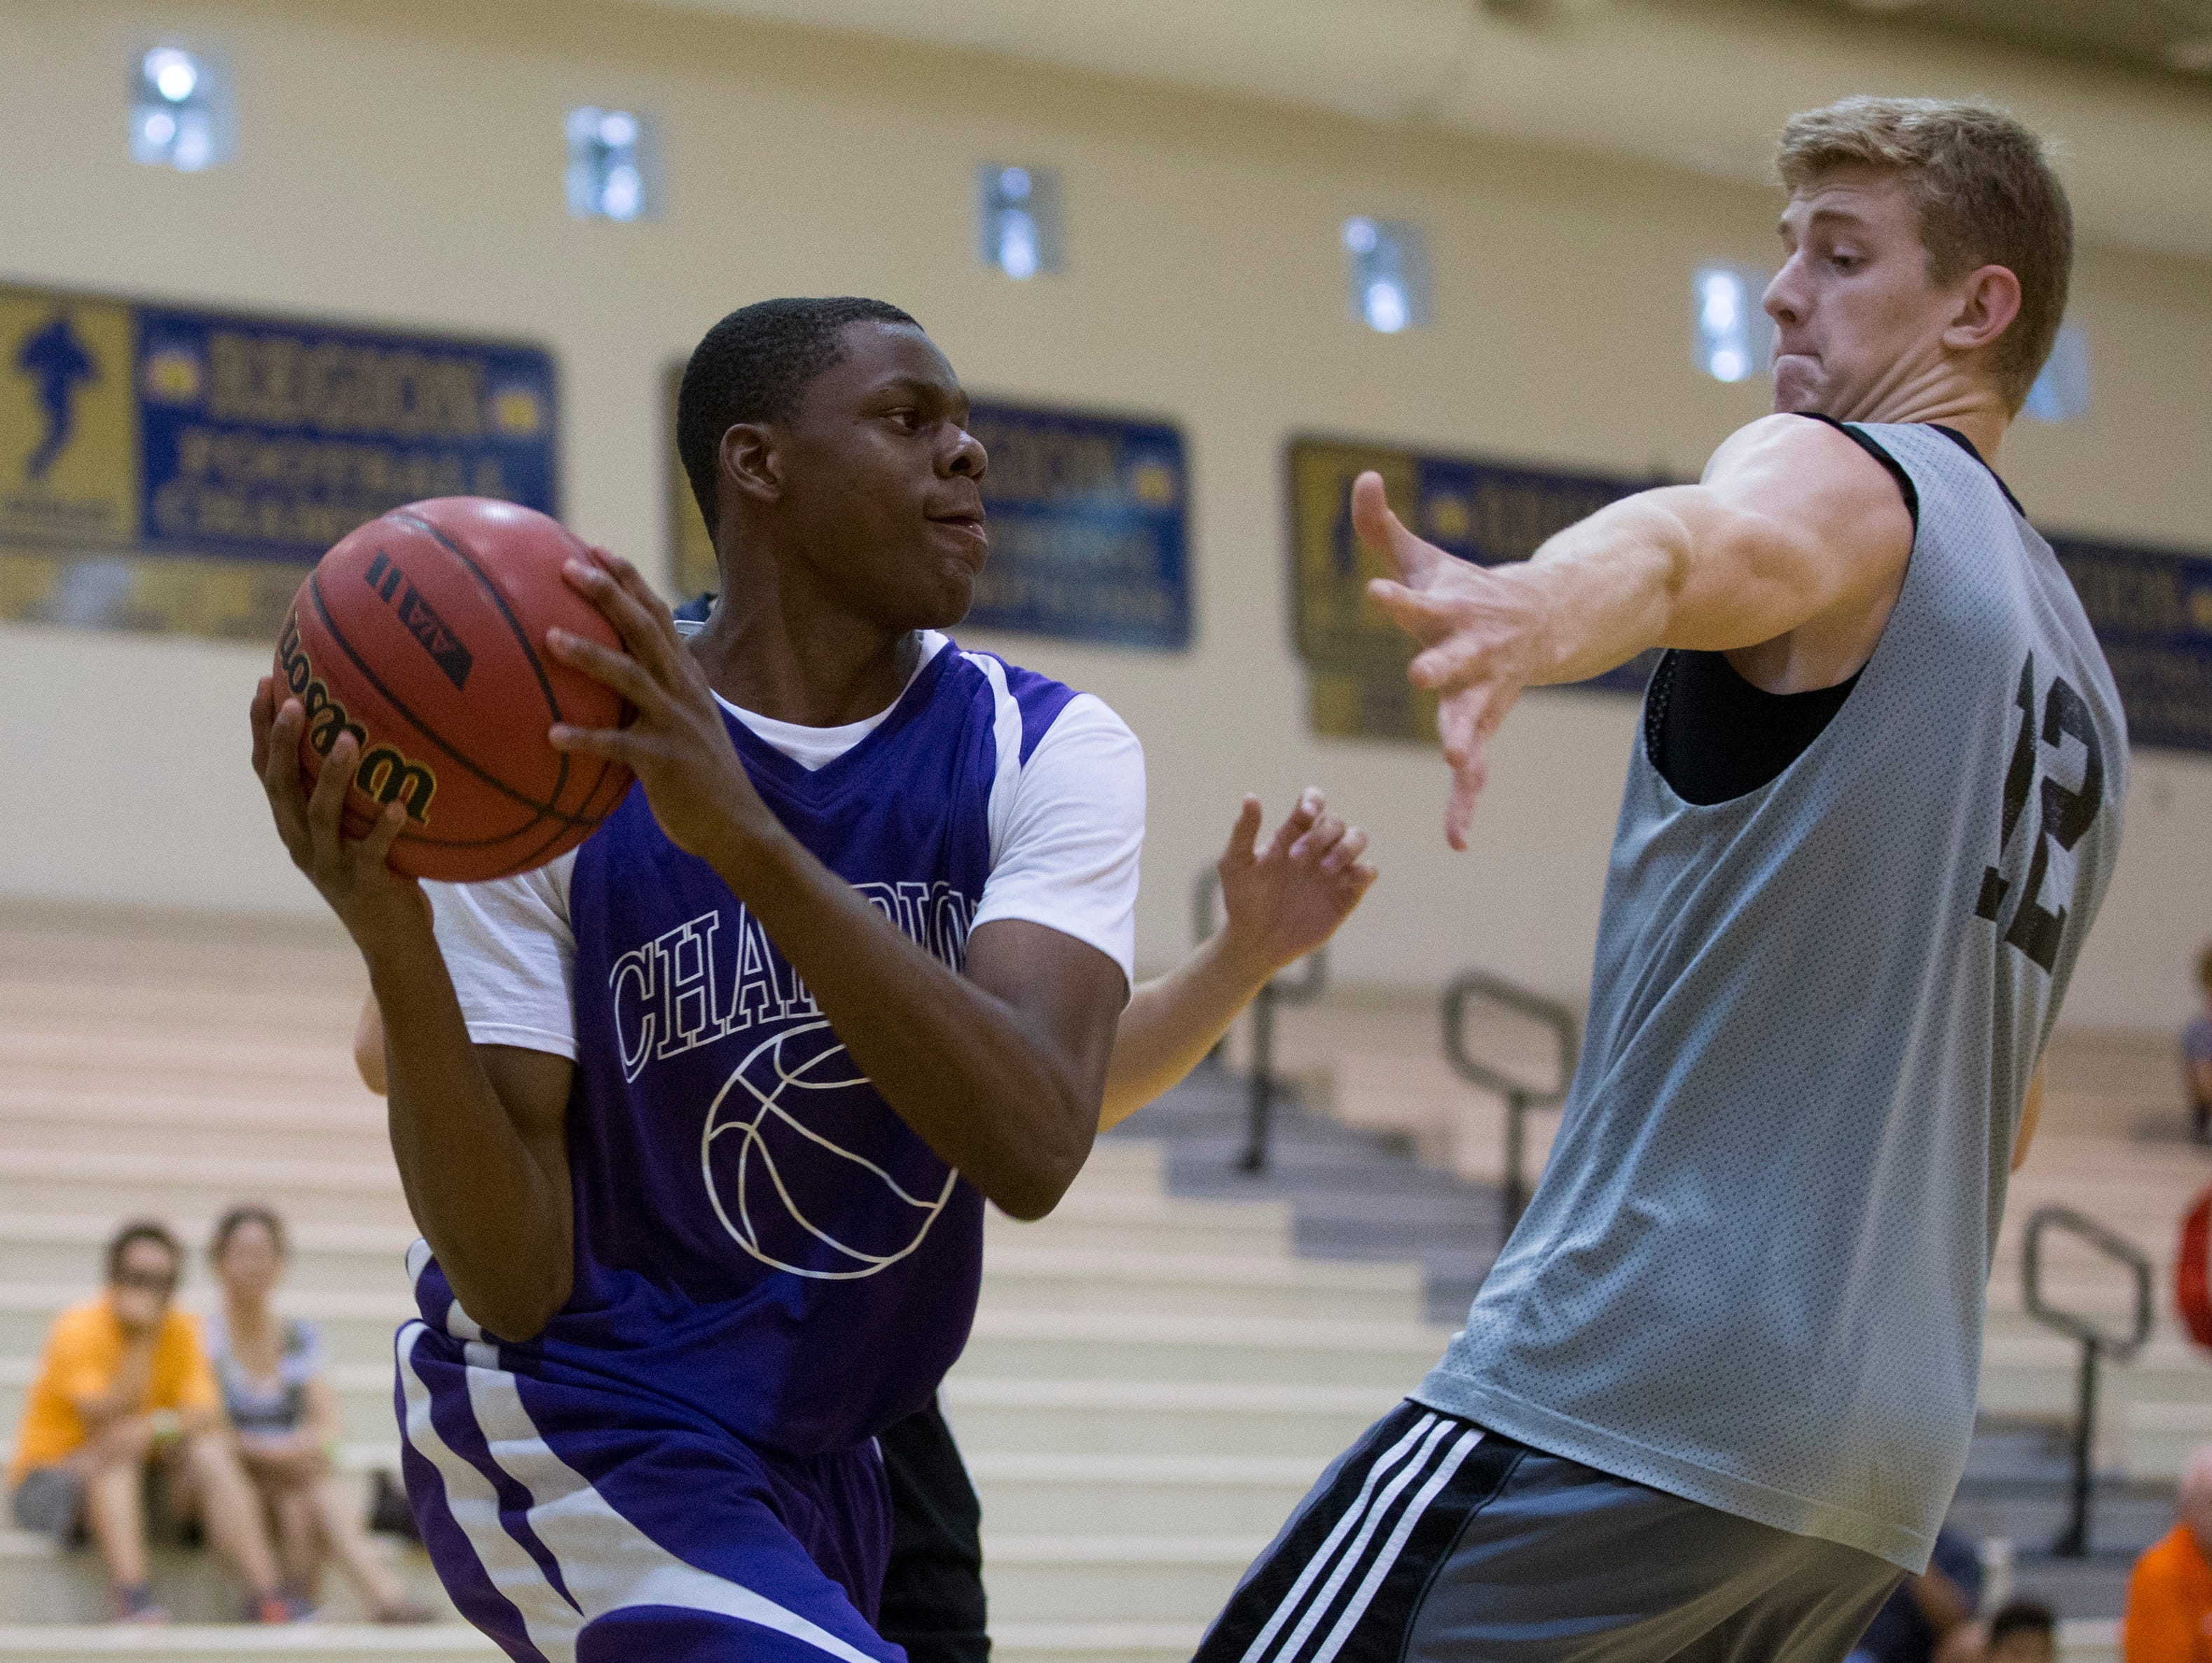 Malik Porter of Cesar Chavez looks to pass while being guarded by Highland High's Tim Fuller during Best in Basketball Summer Invitational at Sandra Day O'Connor High School in Phoenix on June 26, 2015.